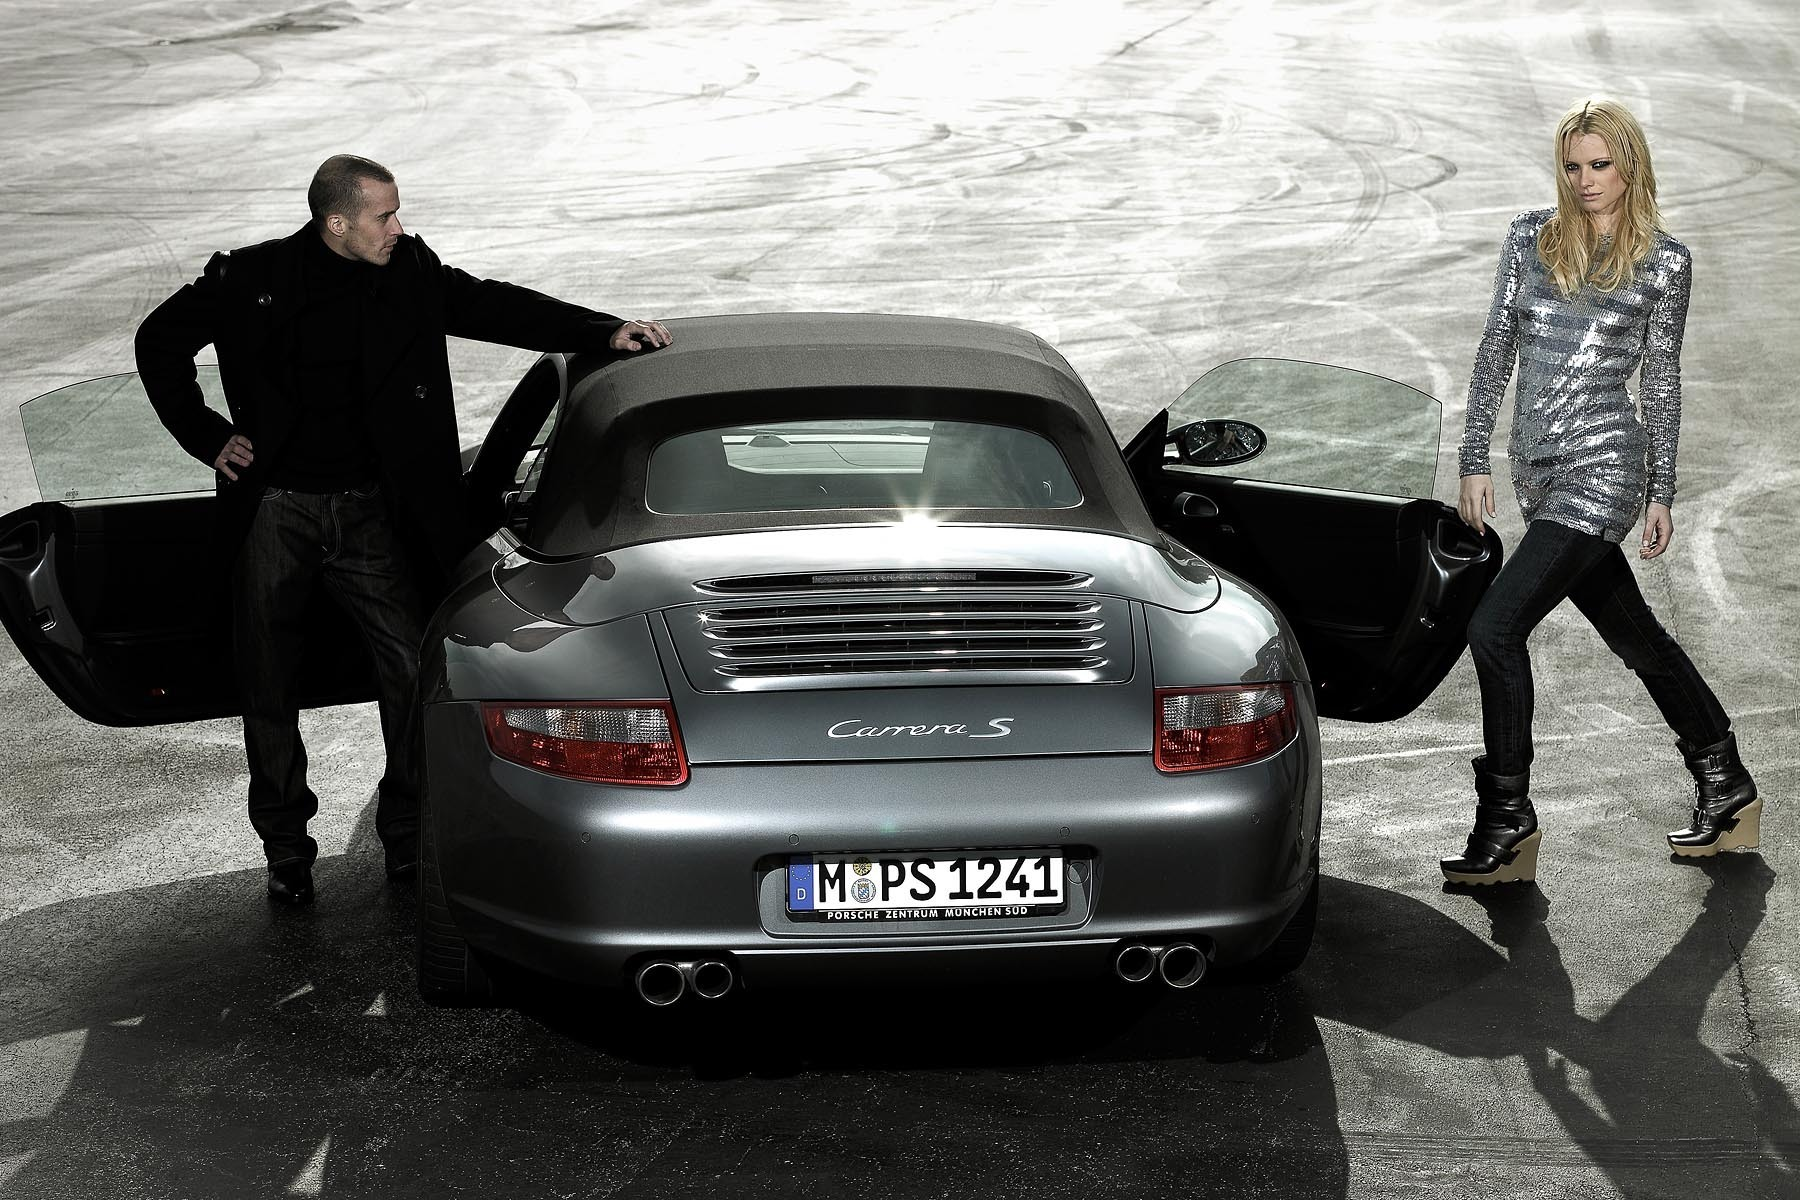 editorial shooting corporate magazine Porsche Germany, editorial Shooting Mode für Kundenmagazin von Porsche Deutschland